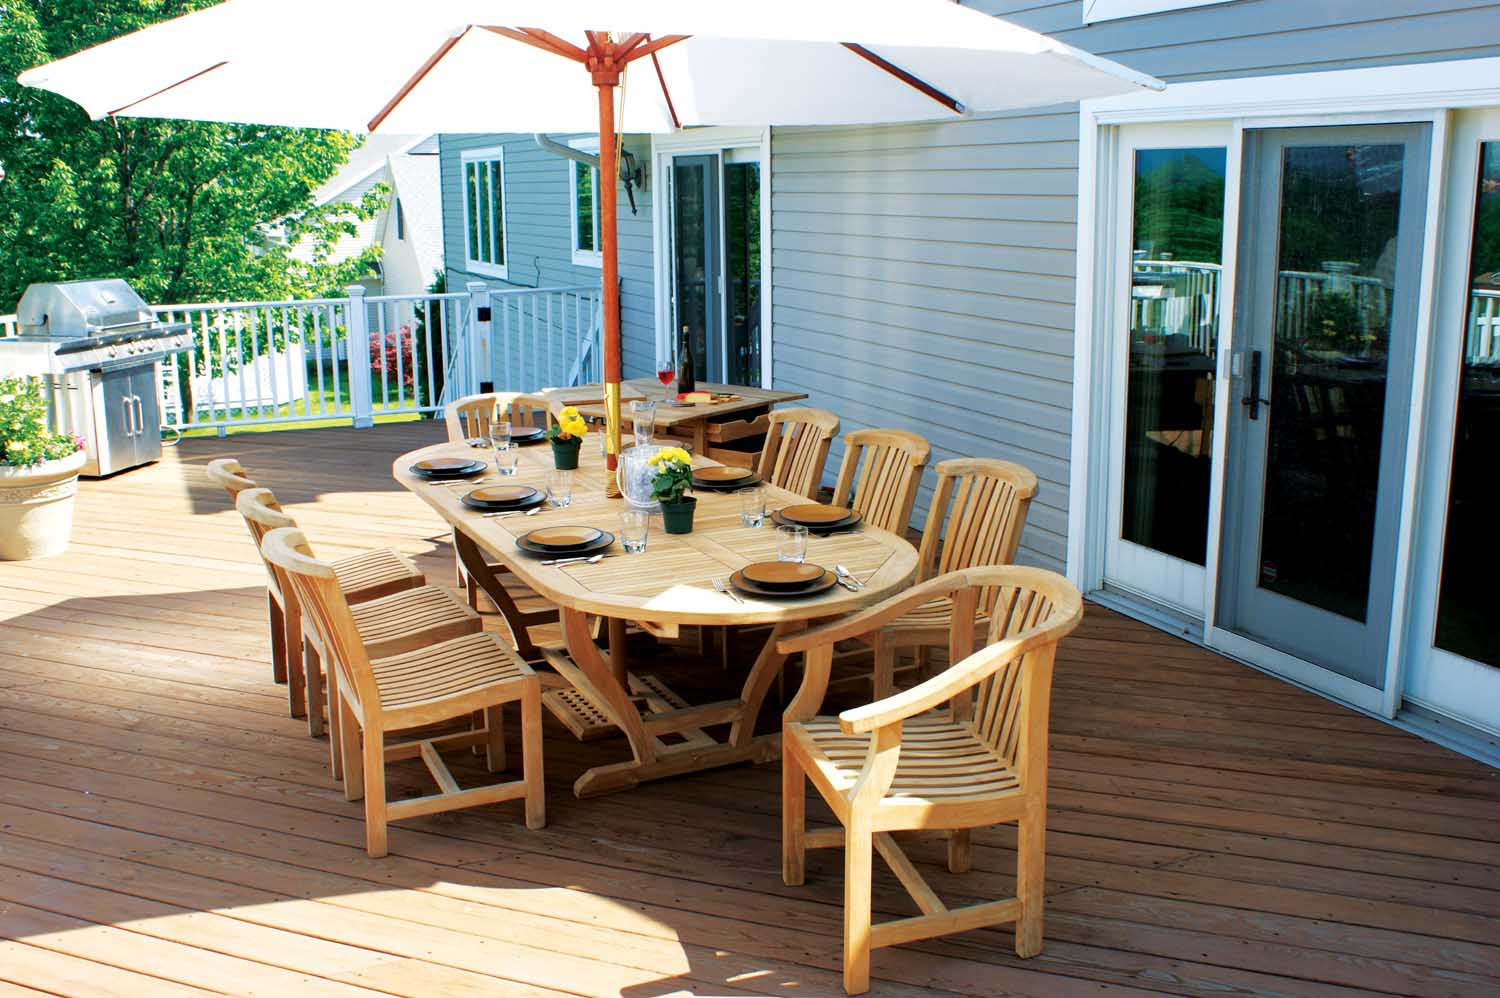 Wooden patio furniture about patio designs contemporary deck and patio ideas - Outdoor furniture design ideas ...